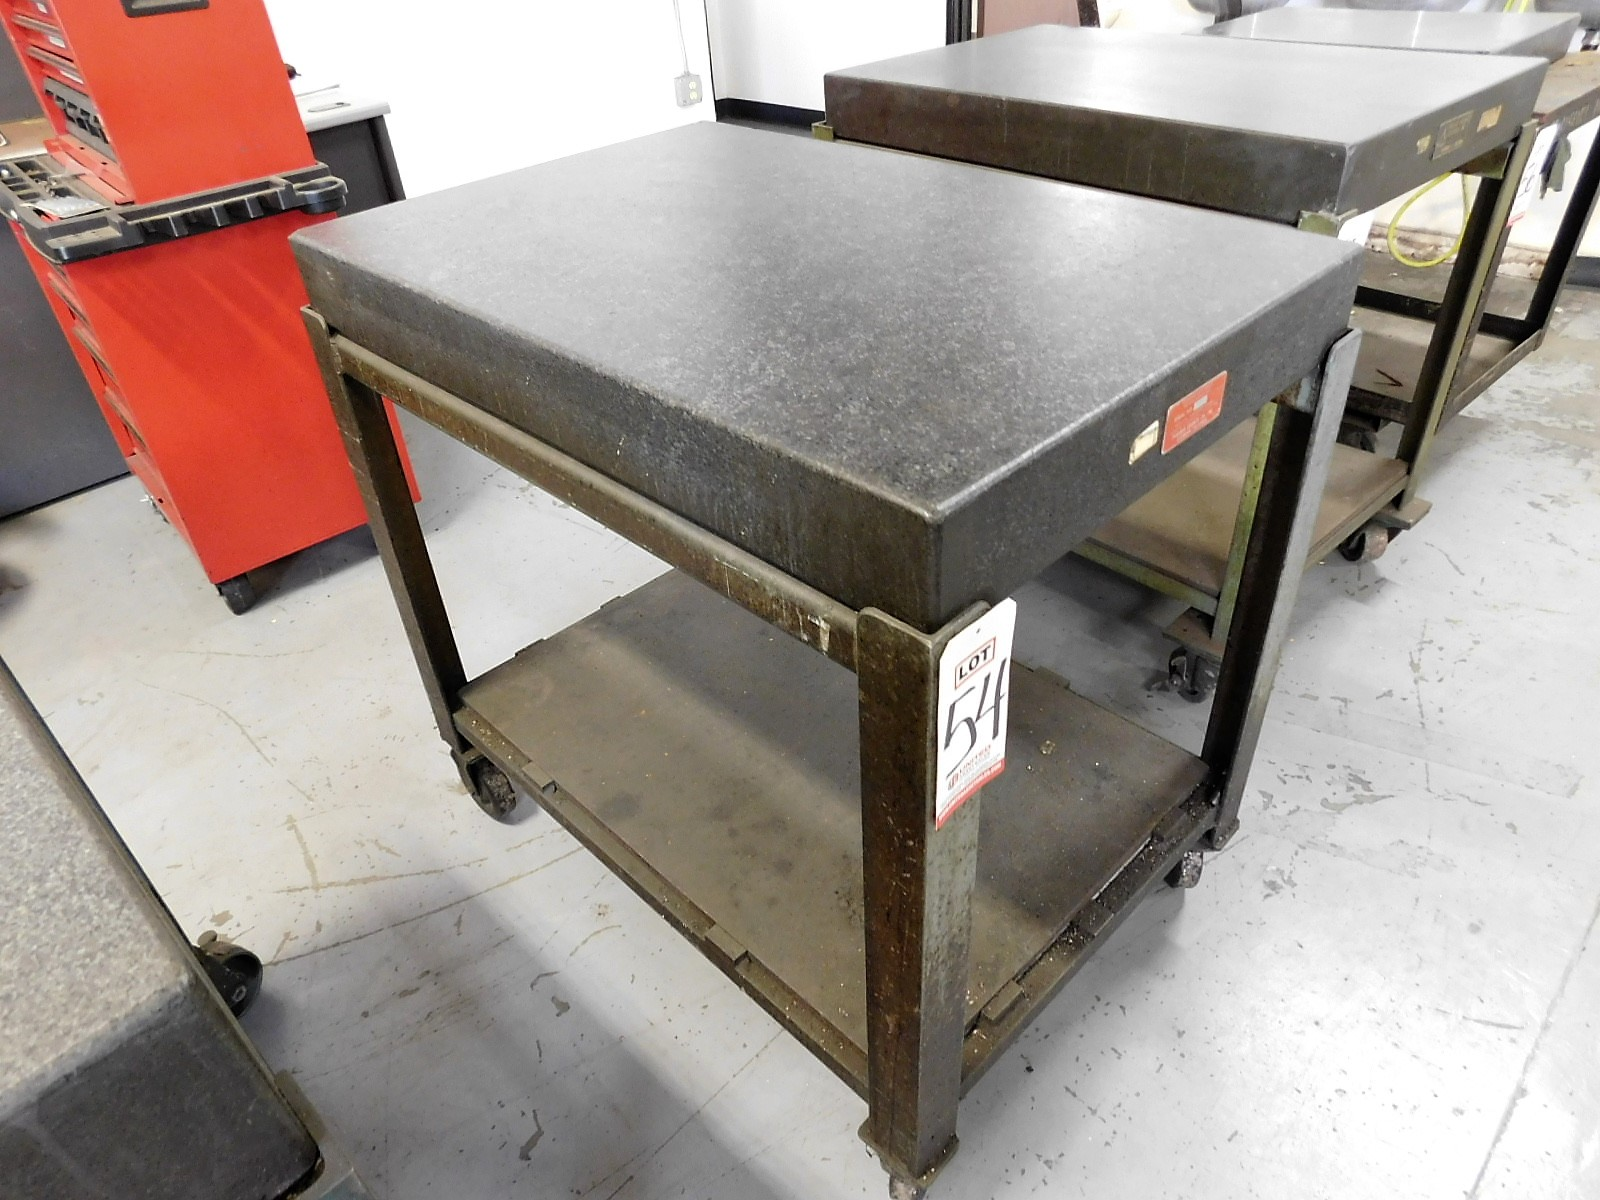 """Lot 54 - GRANITE SURFACE PLATE, 24"""" X 36"""" X 4"""", W/ ROLLING STAND, 36"""" WORK HEIGHT"""